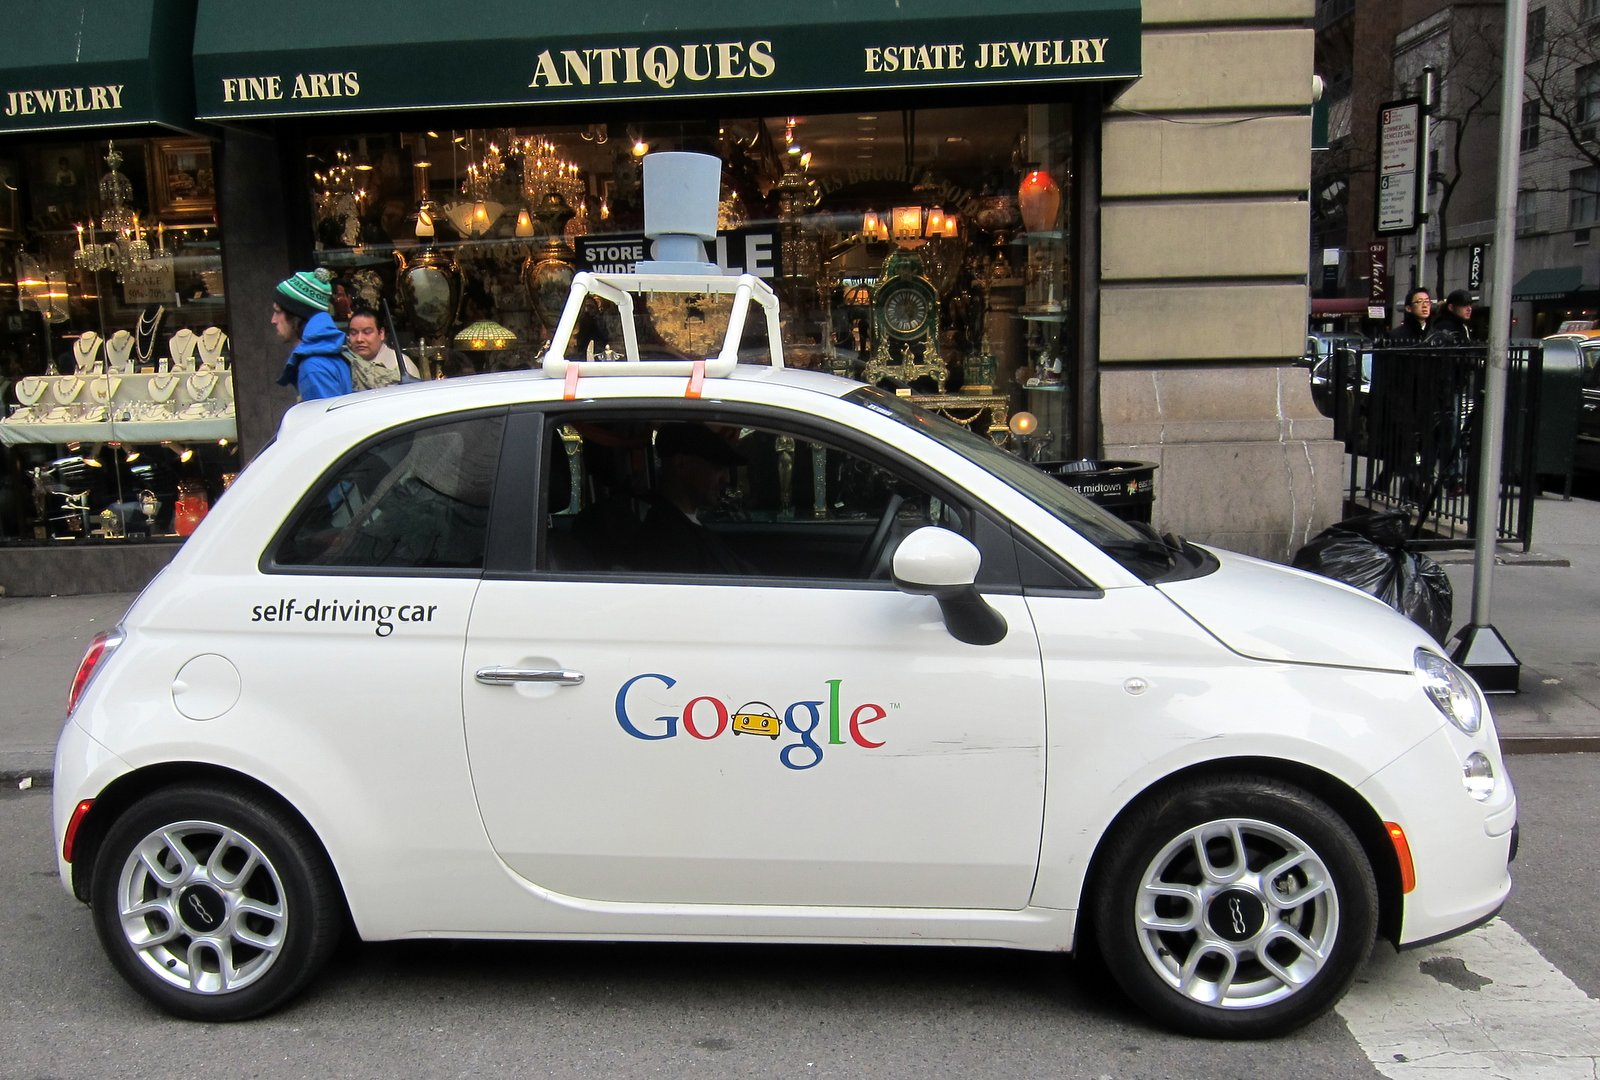 Which Auto Company Makes The Google Self Driving Car